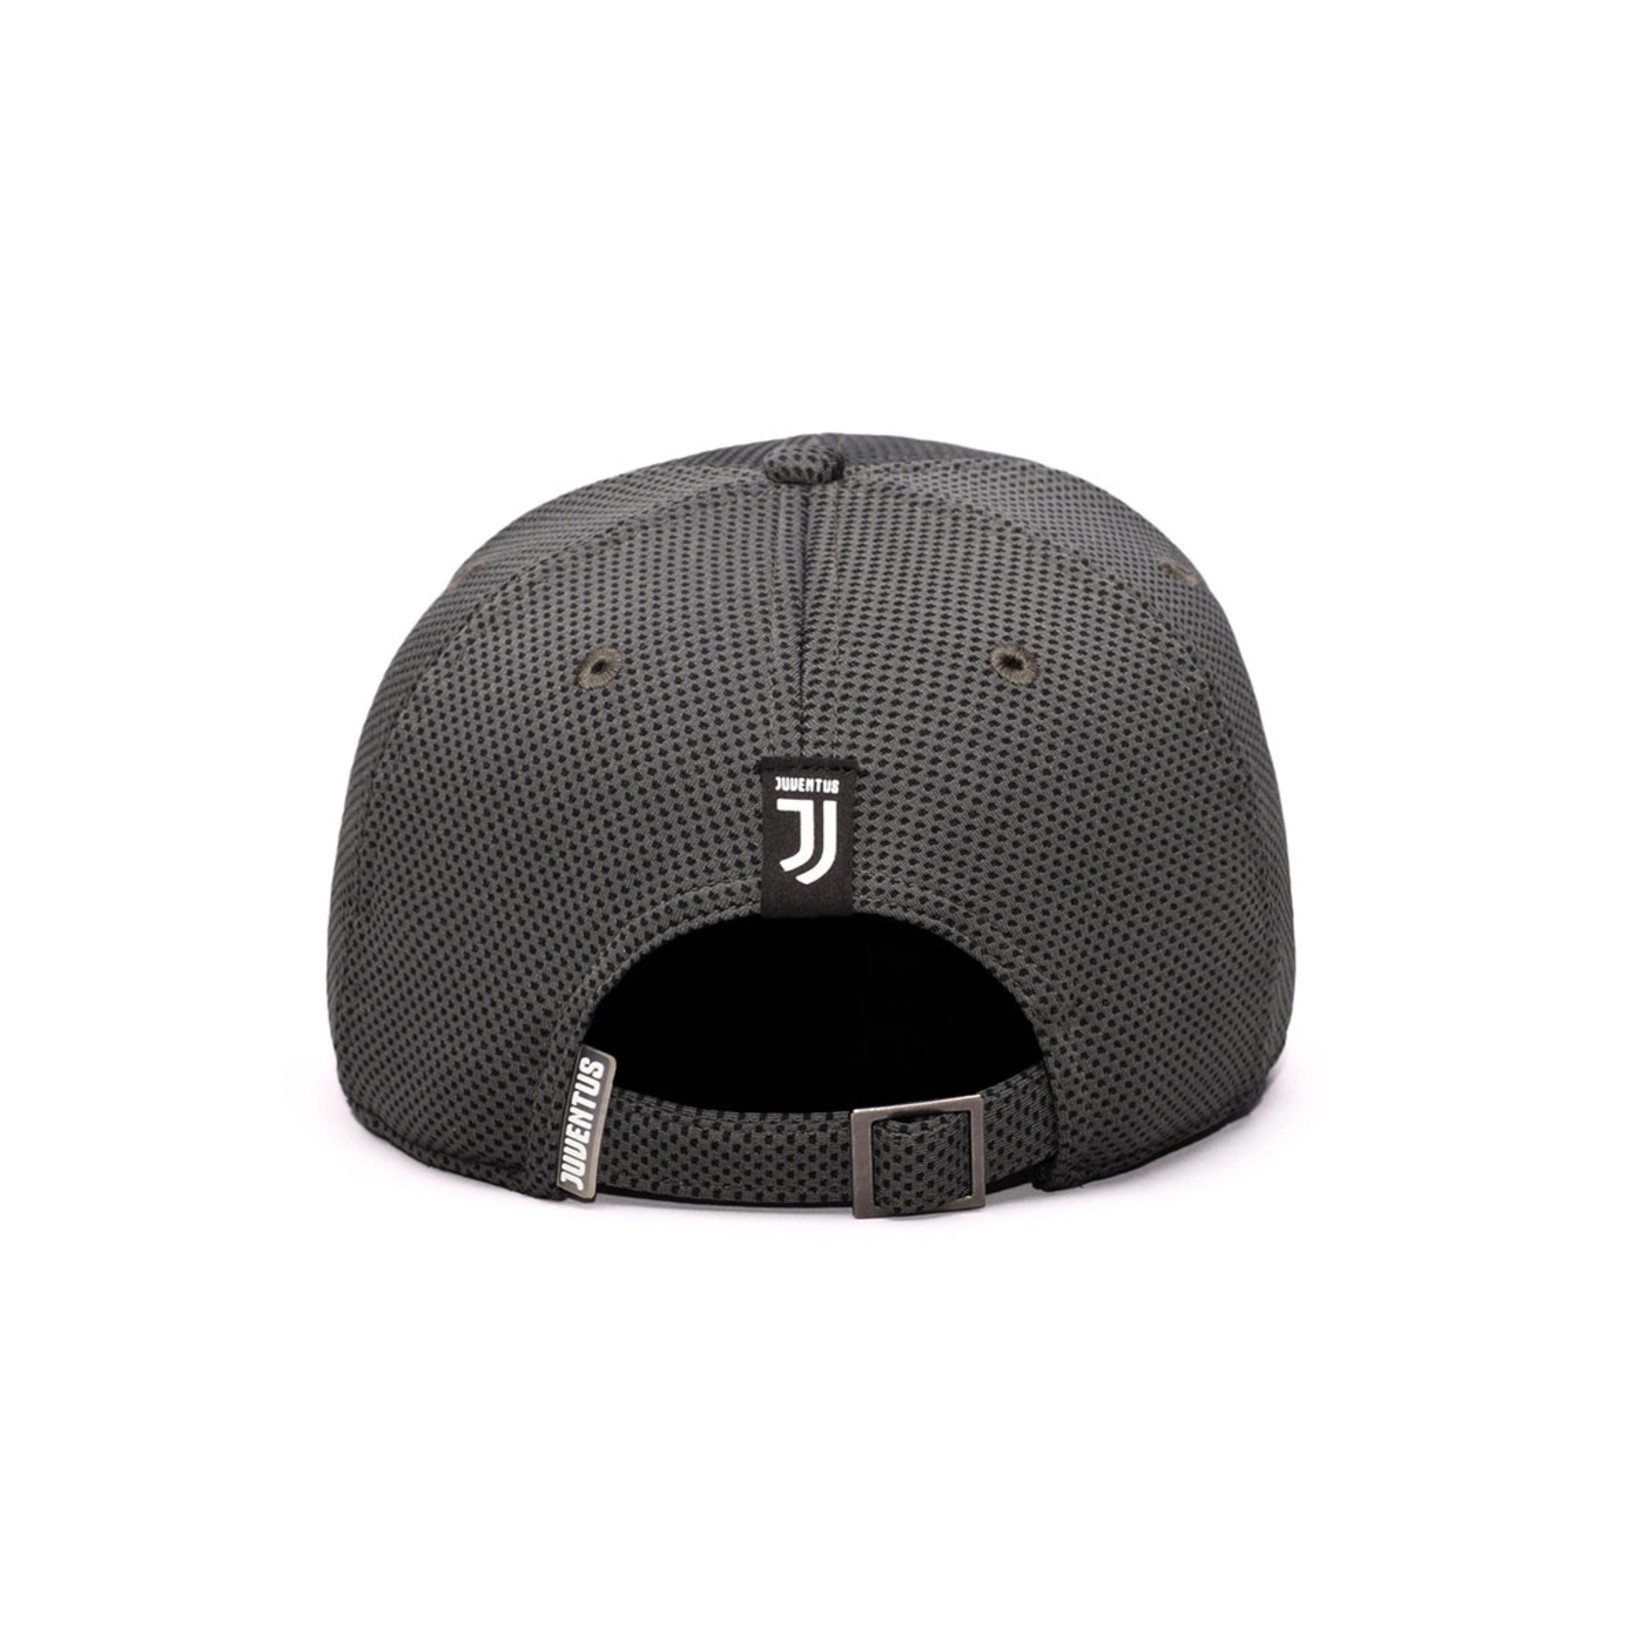 FAN INK JUVENTUS TROPHY ADJUSTABLE HAT